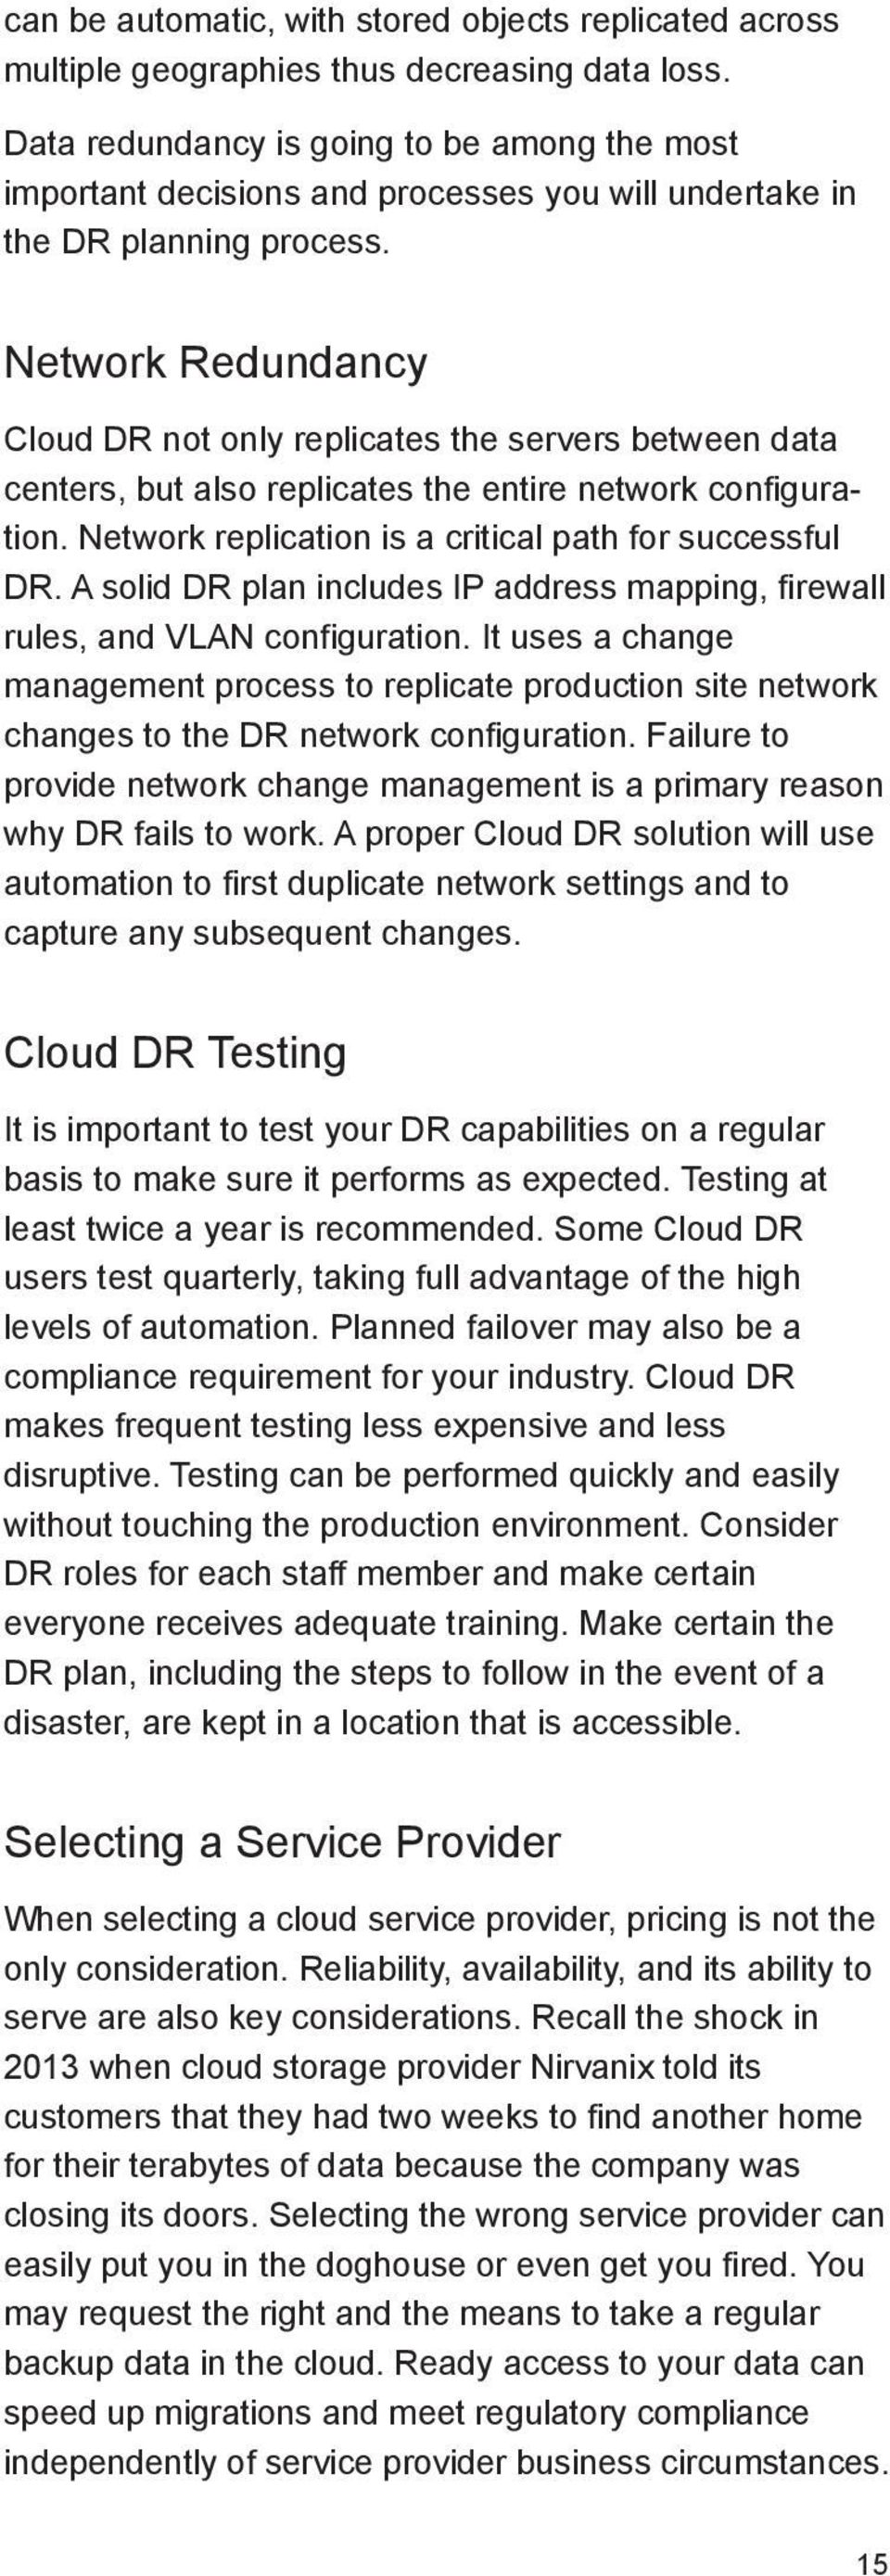 Network Redundancy Cloud DR not only replicates the servers between data centers, but also replicates the entire network configuration. Network replication is a critical path for successful DR.